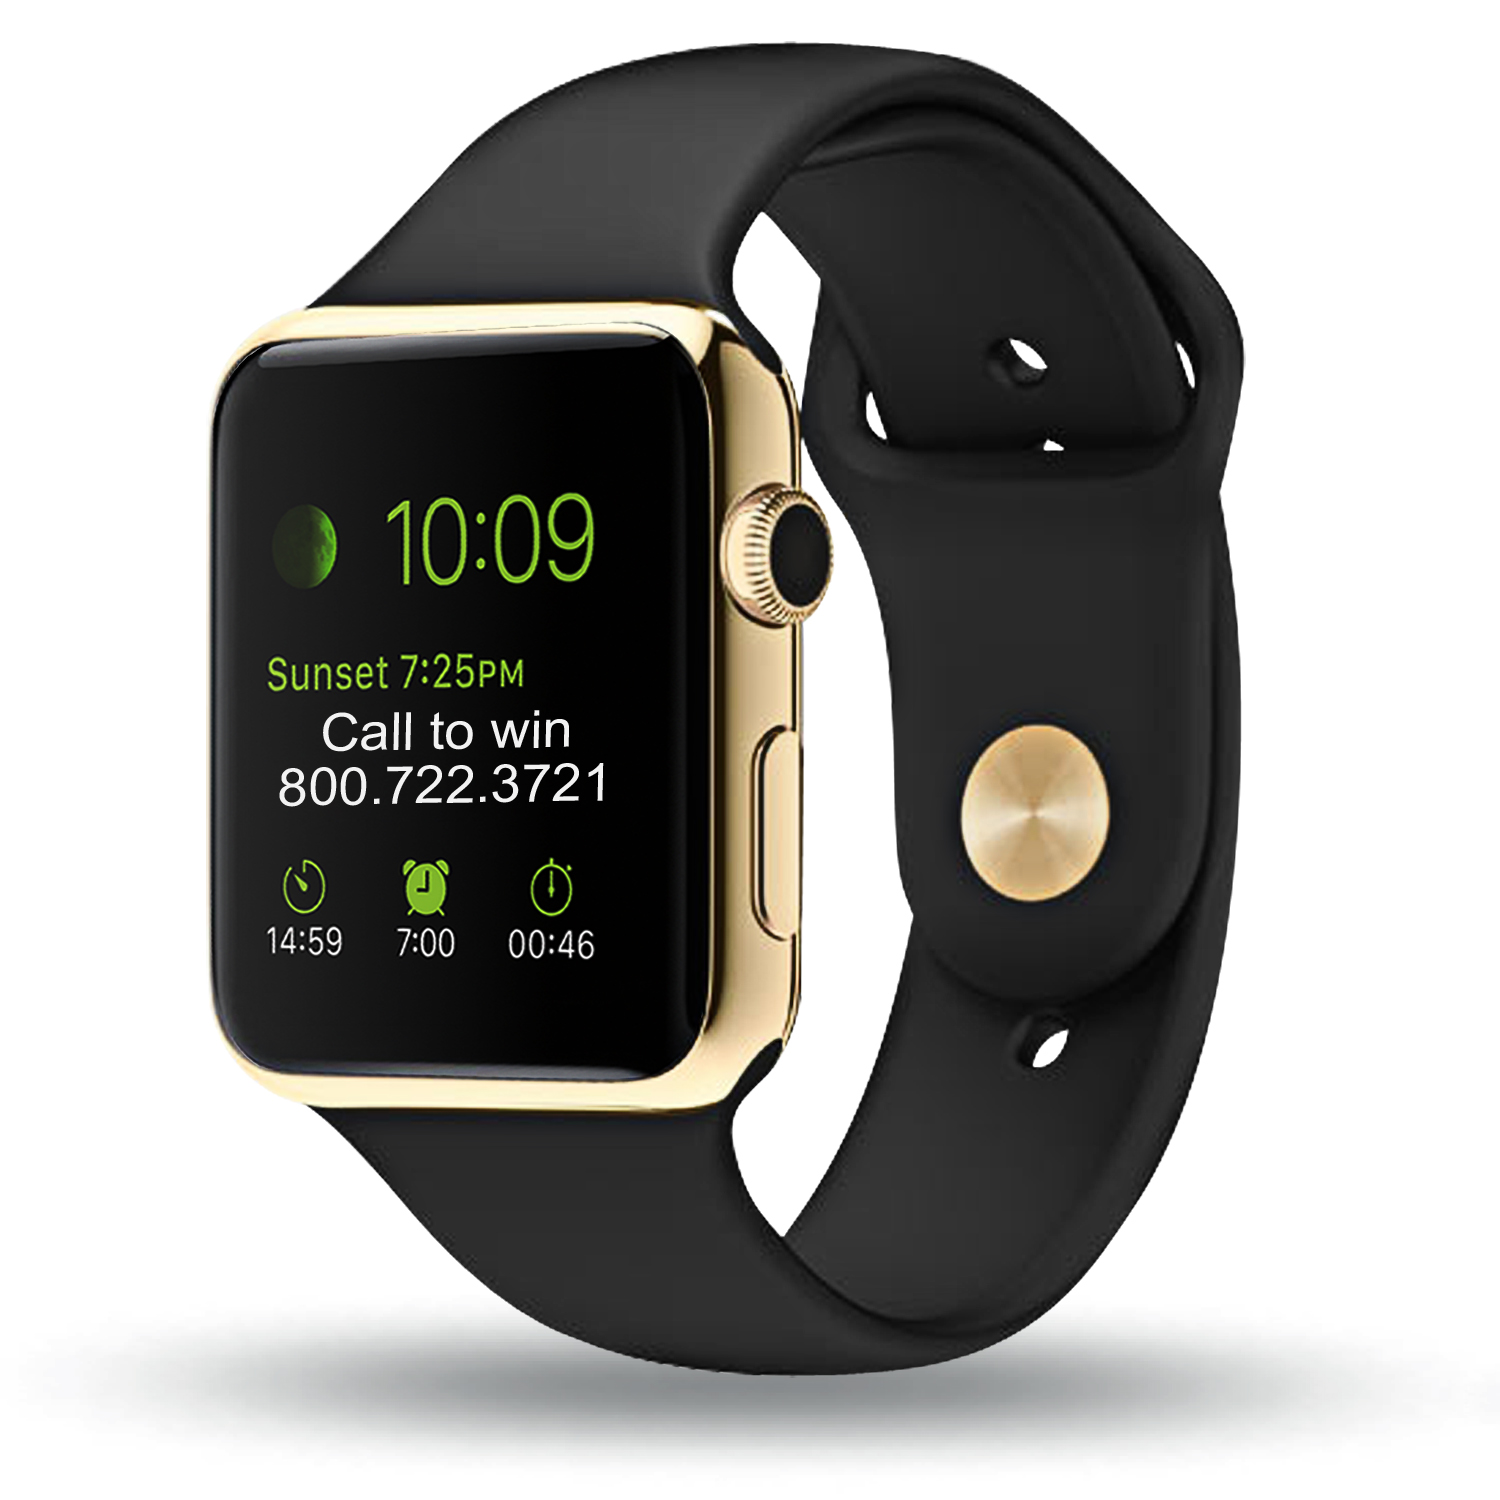 apple-watch-18k.jpg